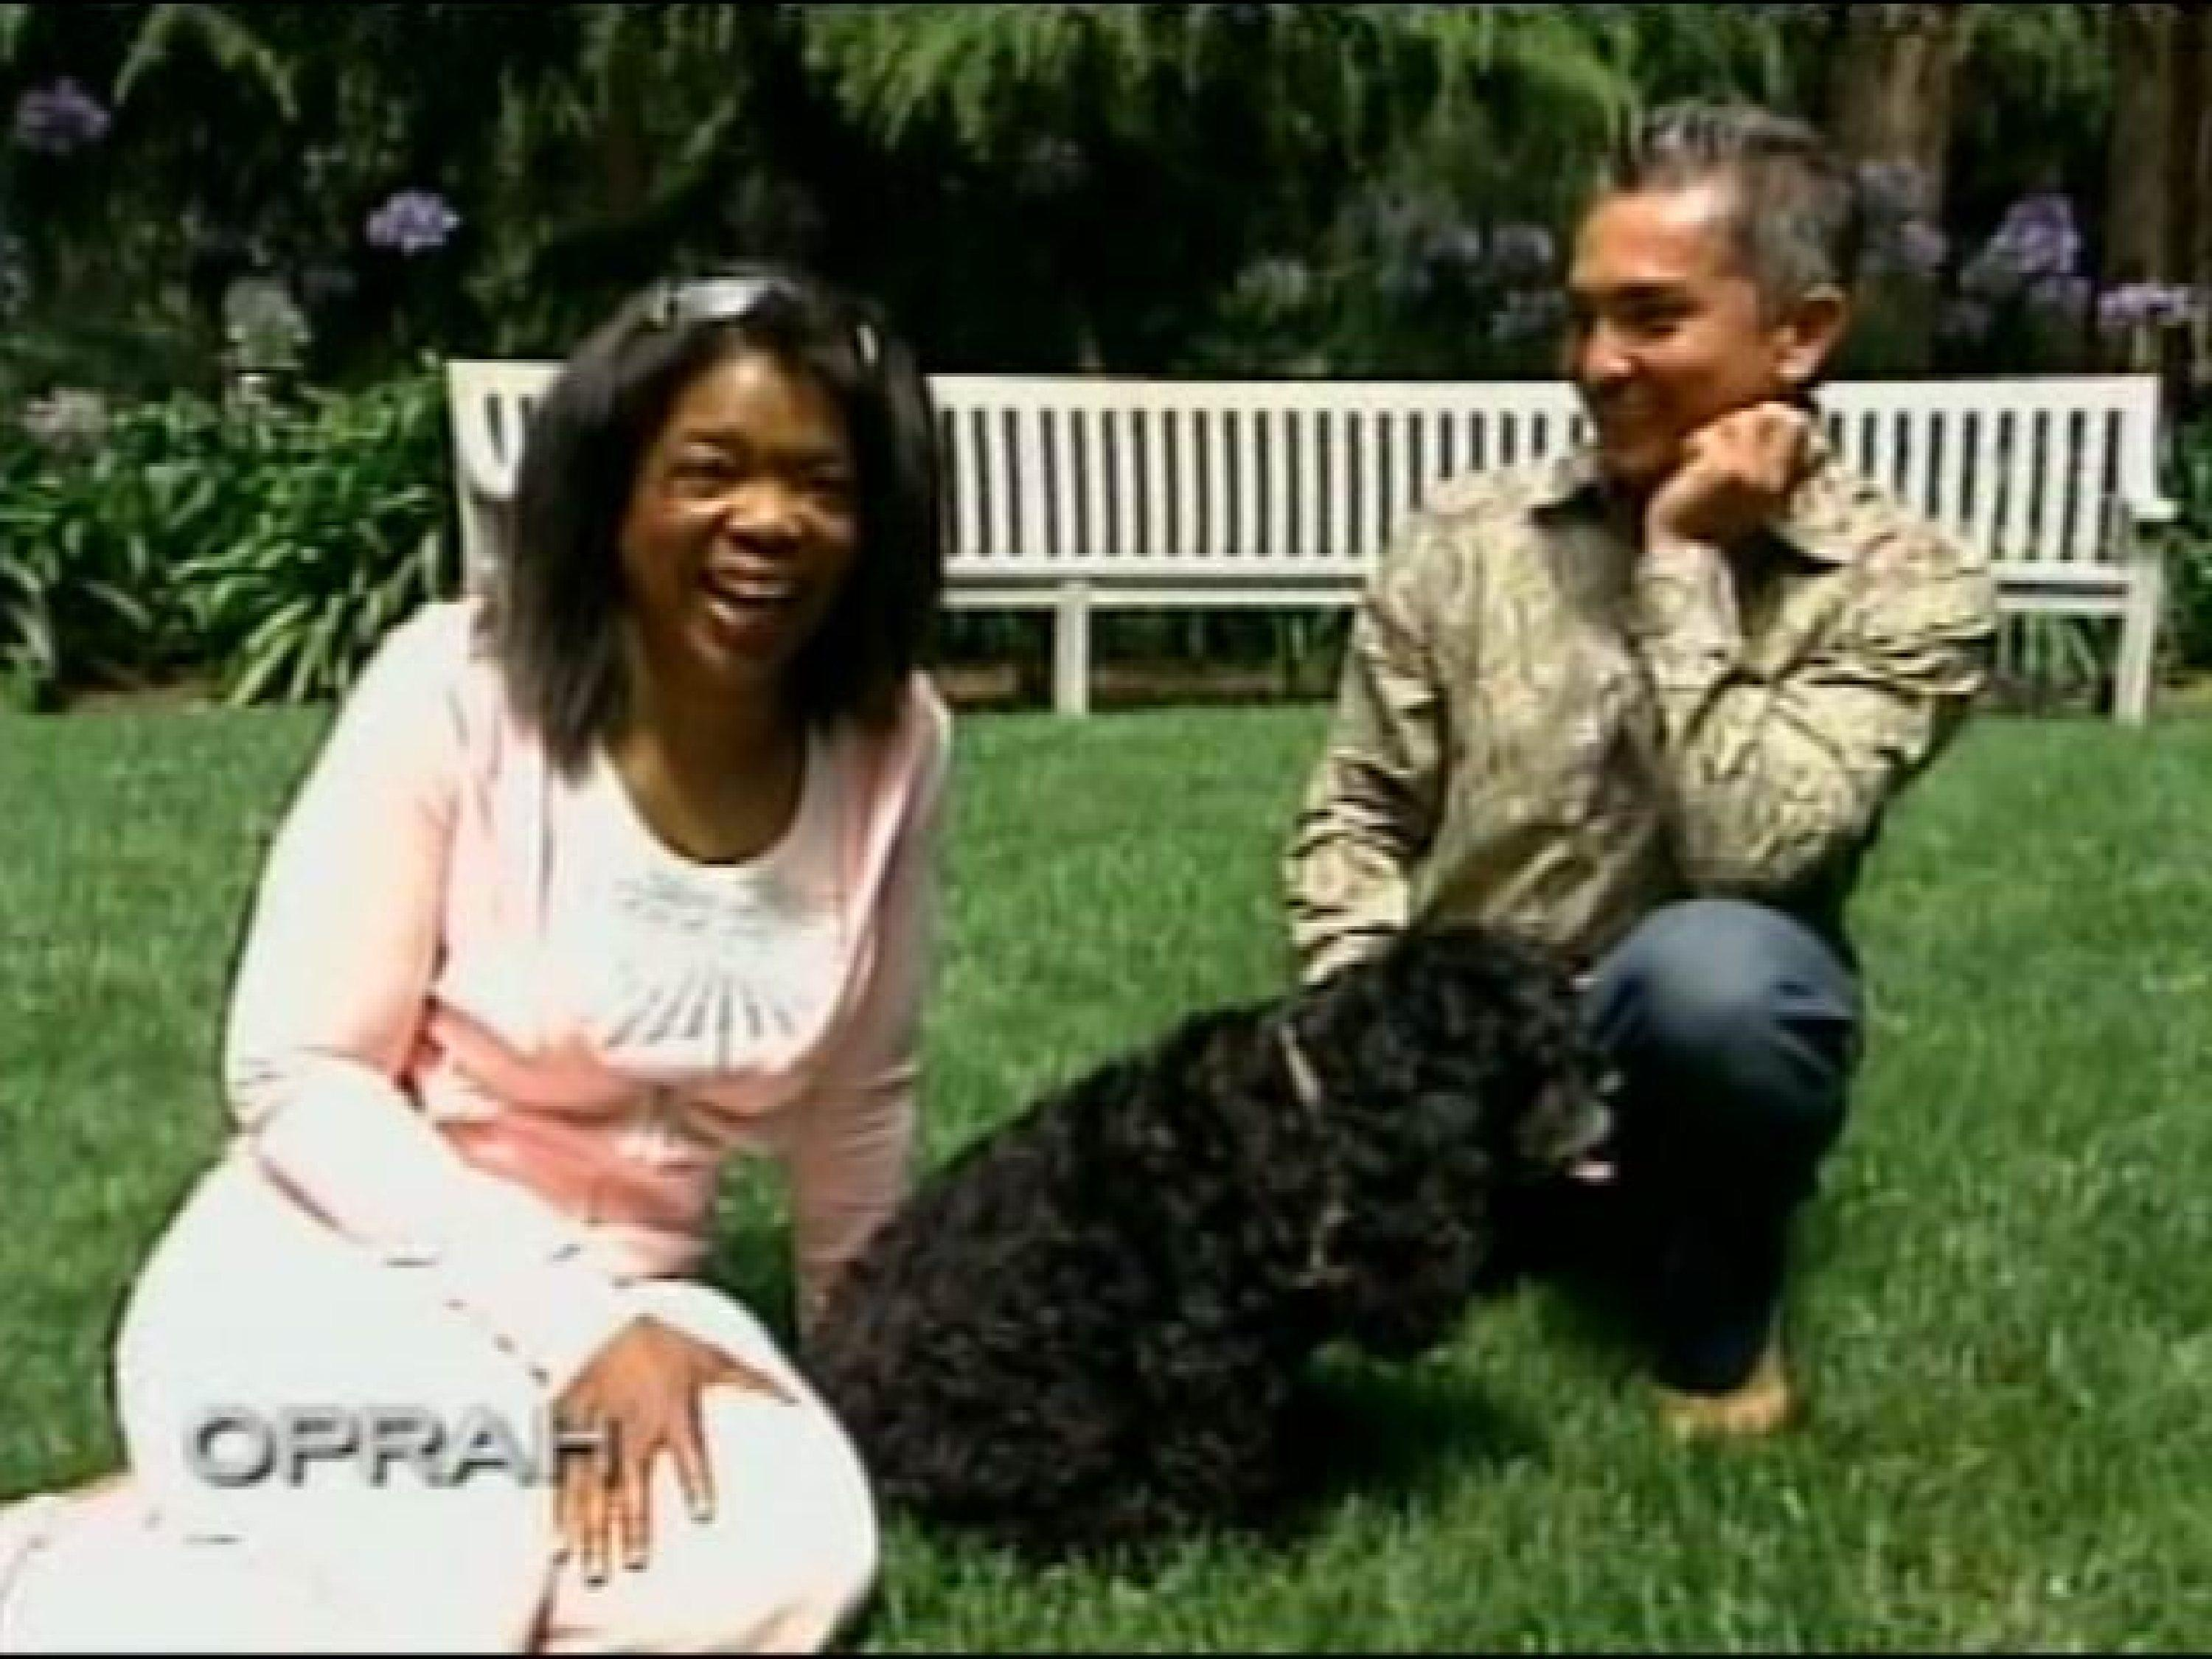 Oprah Winfrey with her dogs in 2006